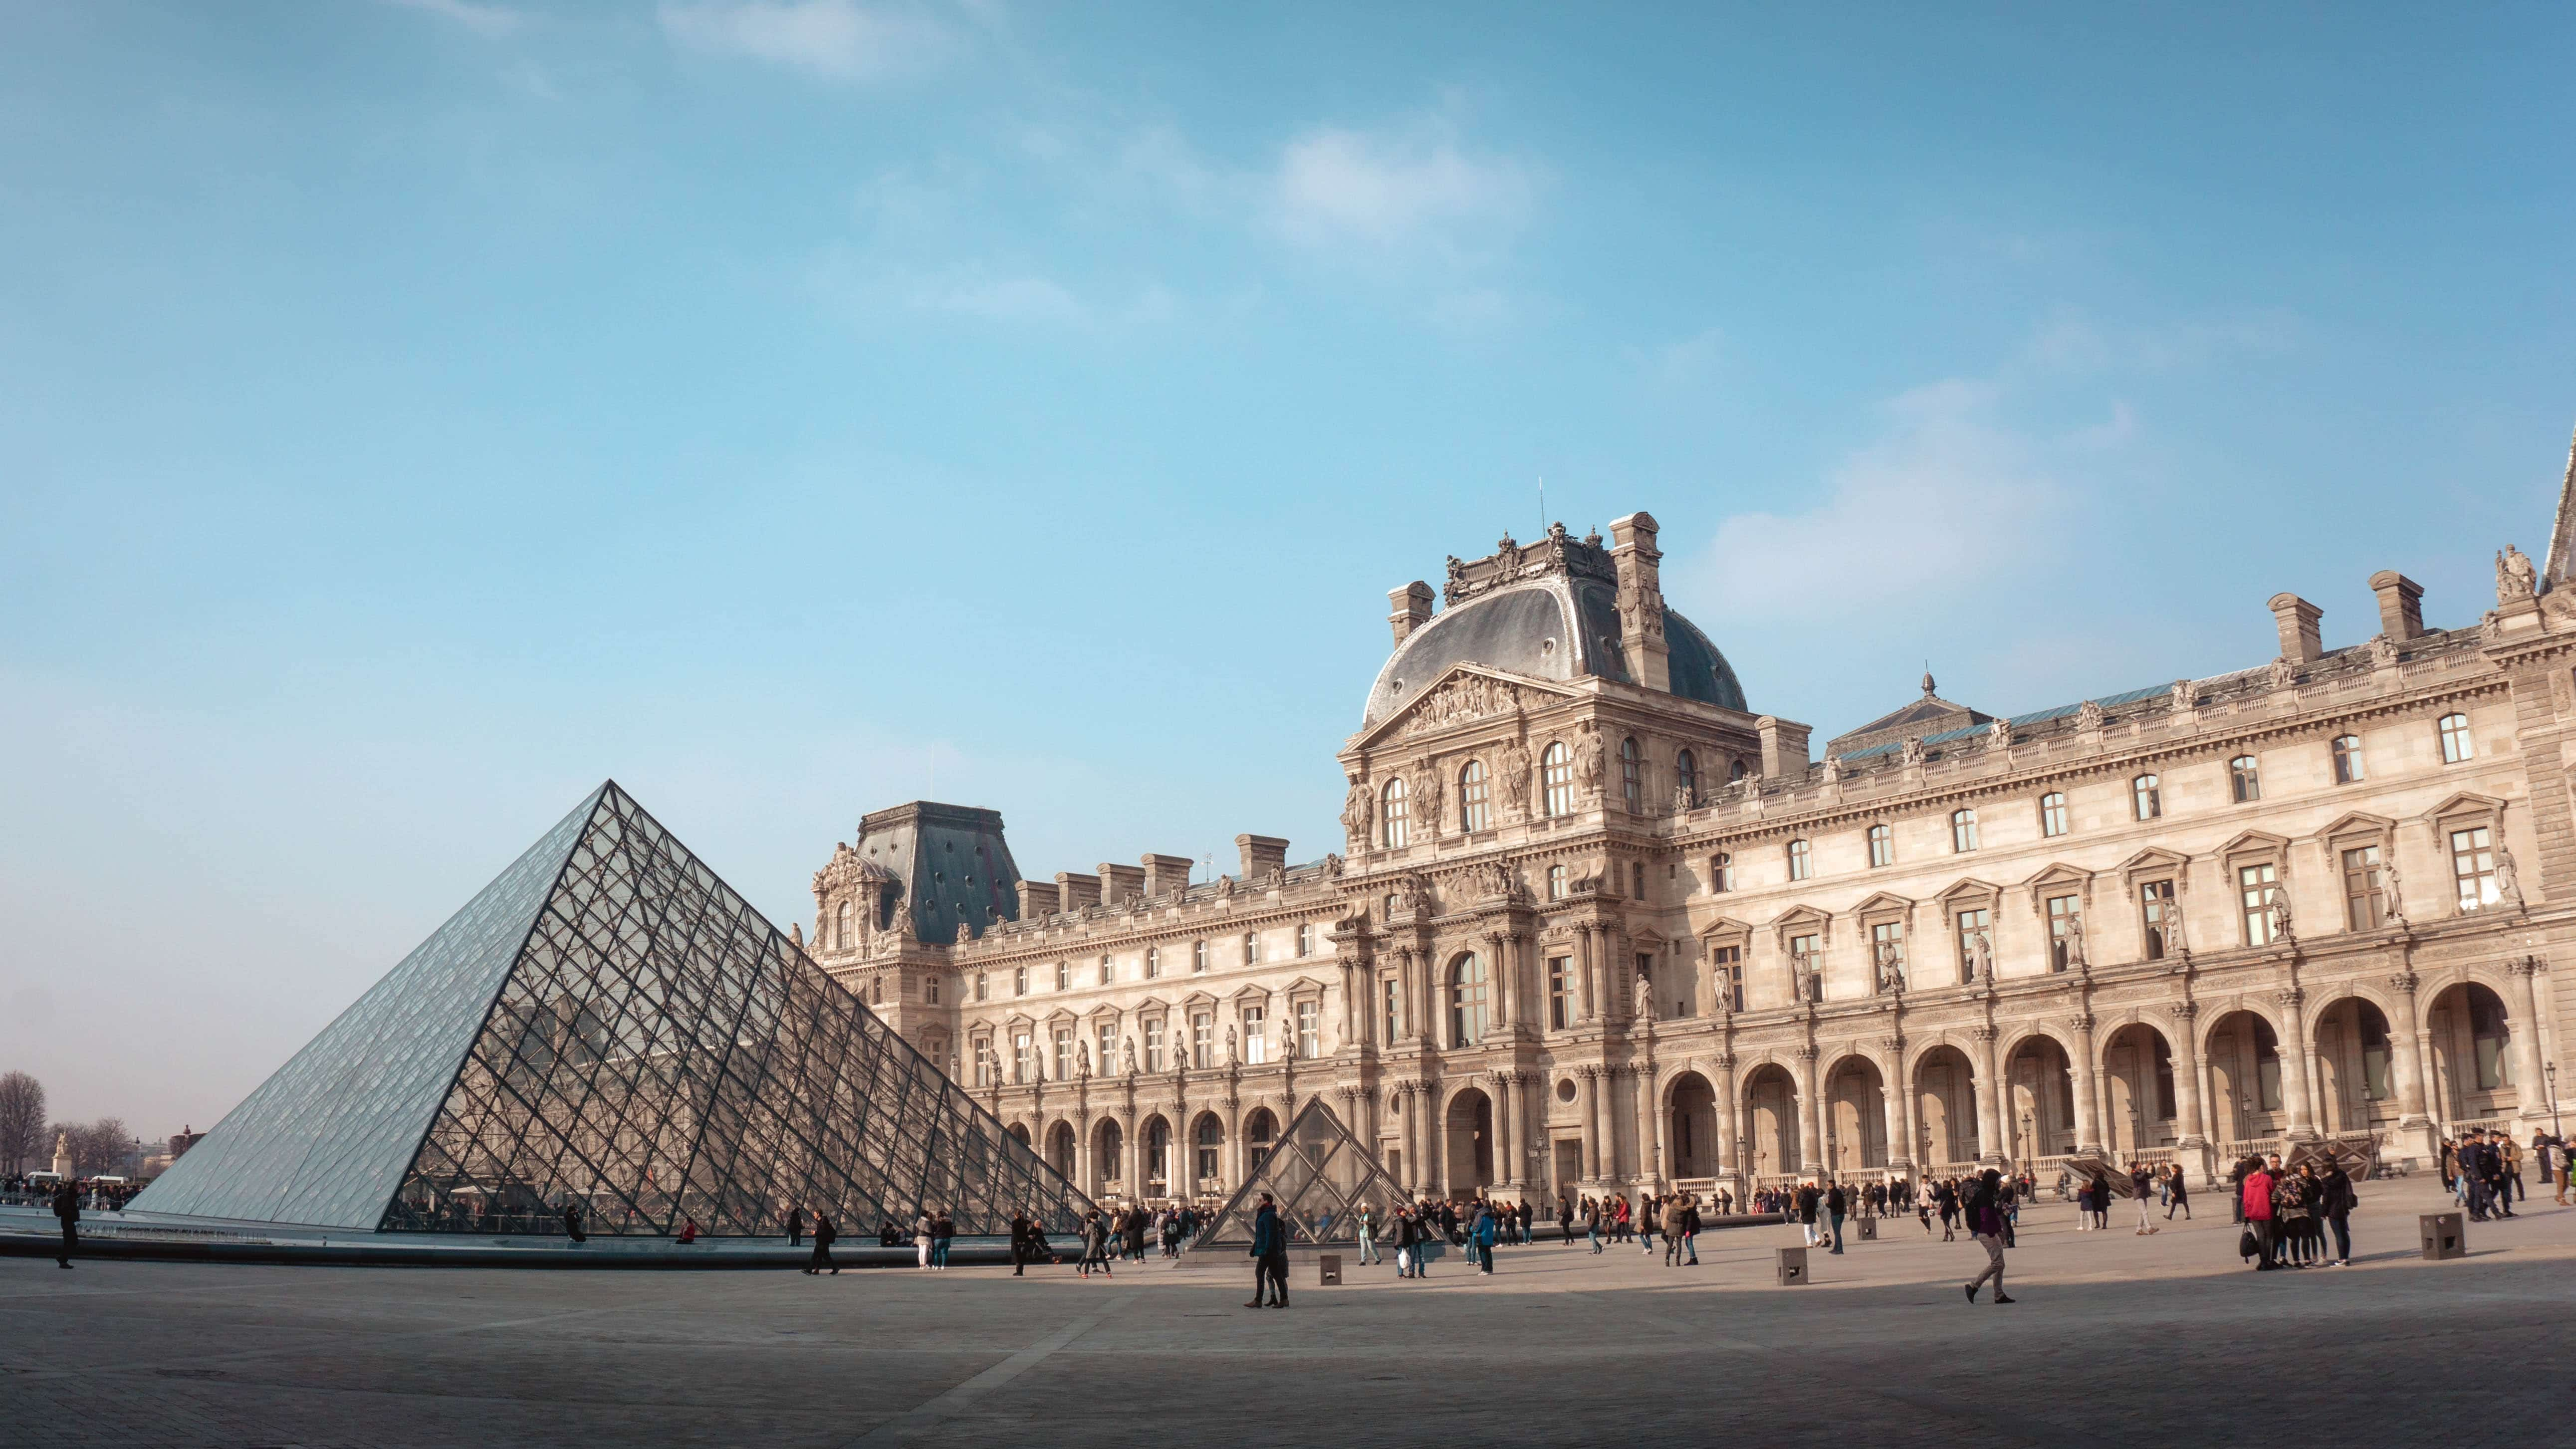 paris travel instagram hashtags - Louvre